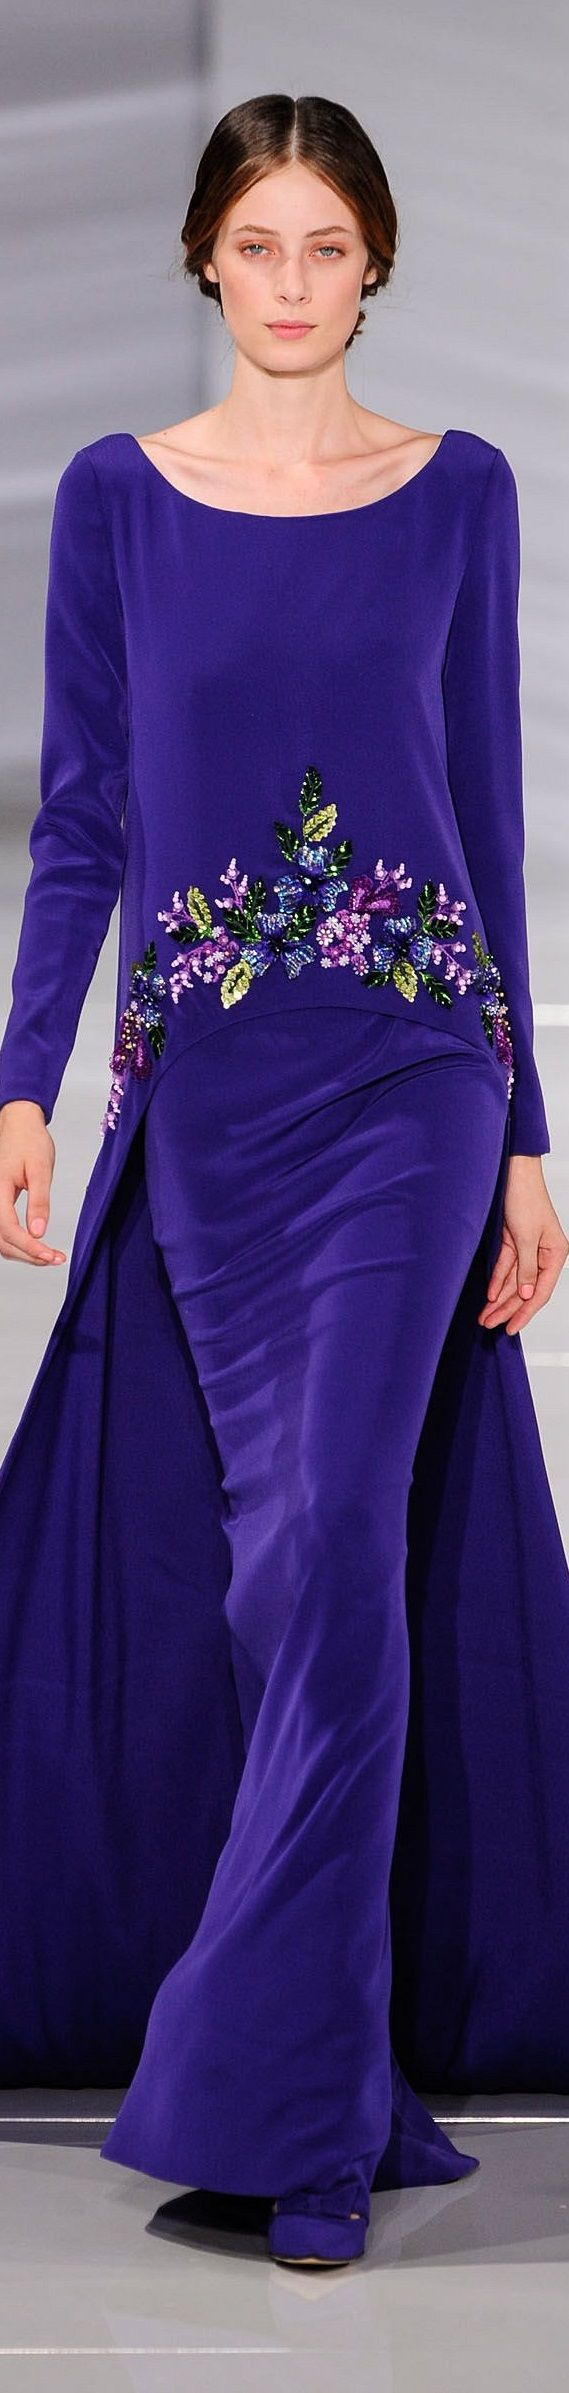 Georges Hobeika ~ Haute Couture Violet Velvet Floral Gown, Fall 2015-16